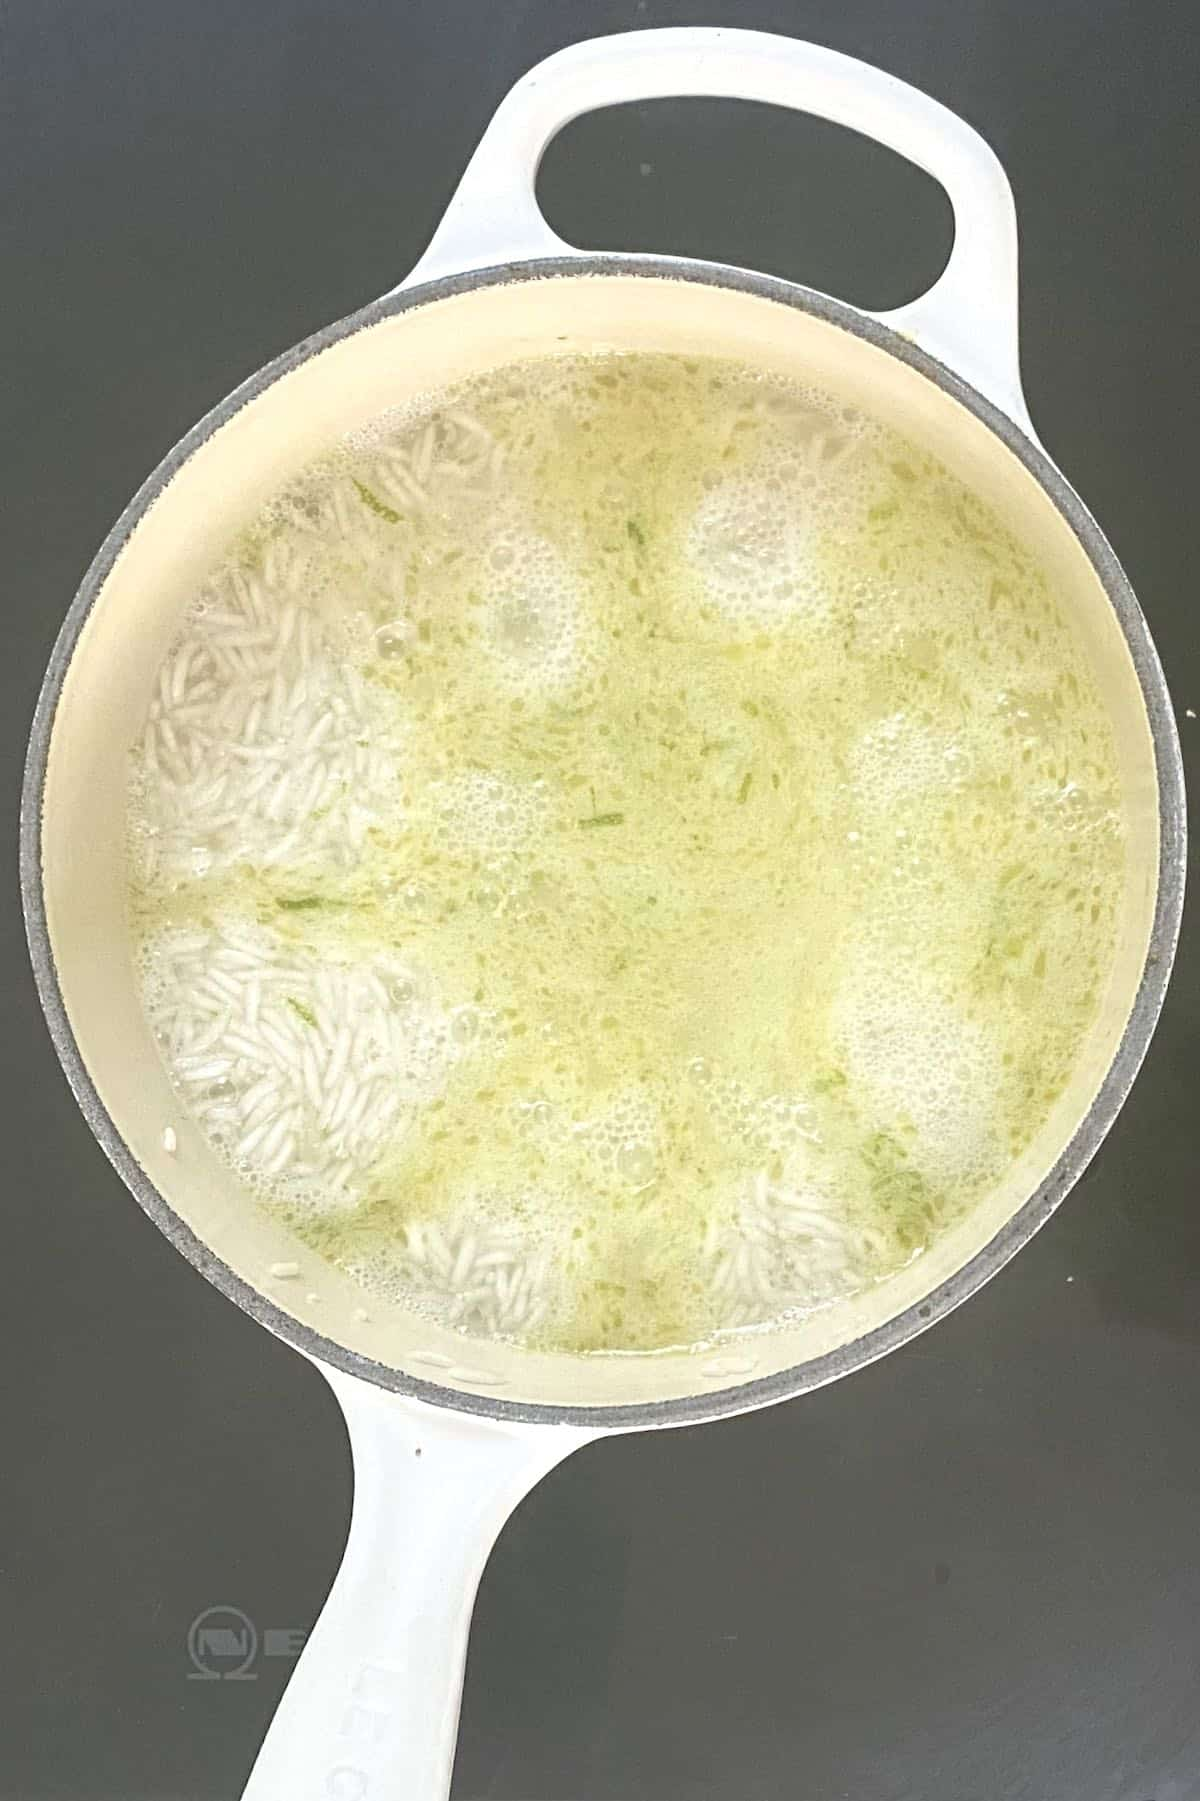 Basmati rice cooking in a pot with water